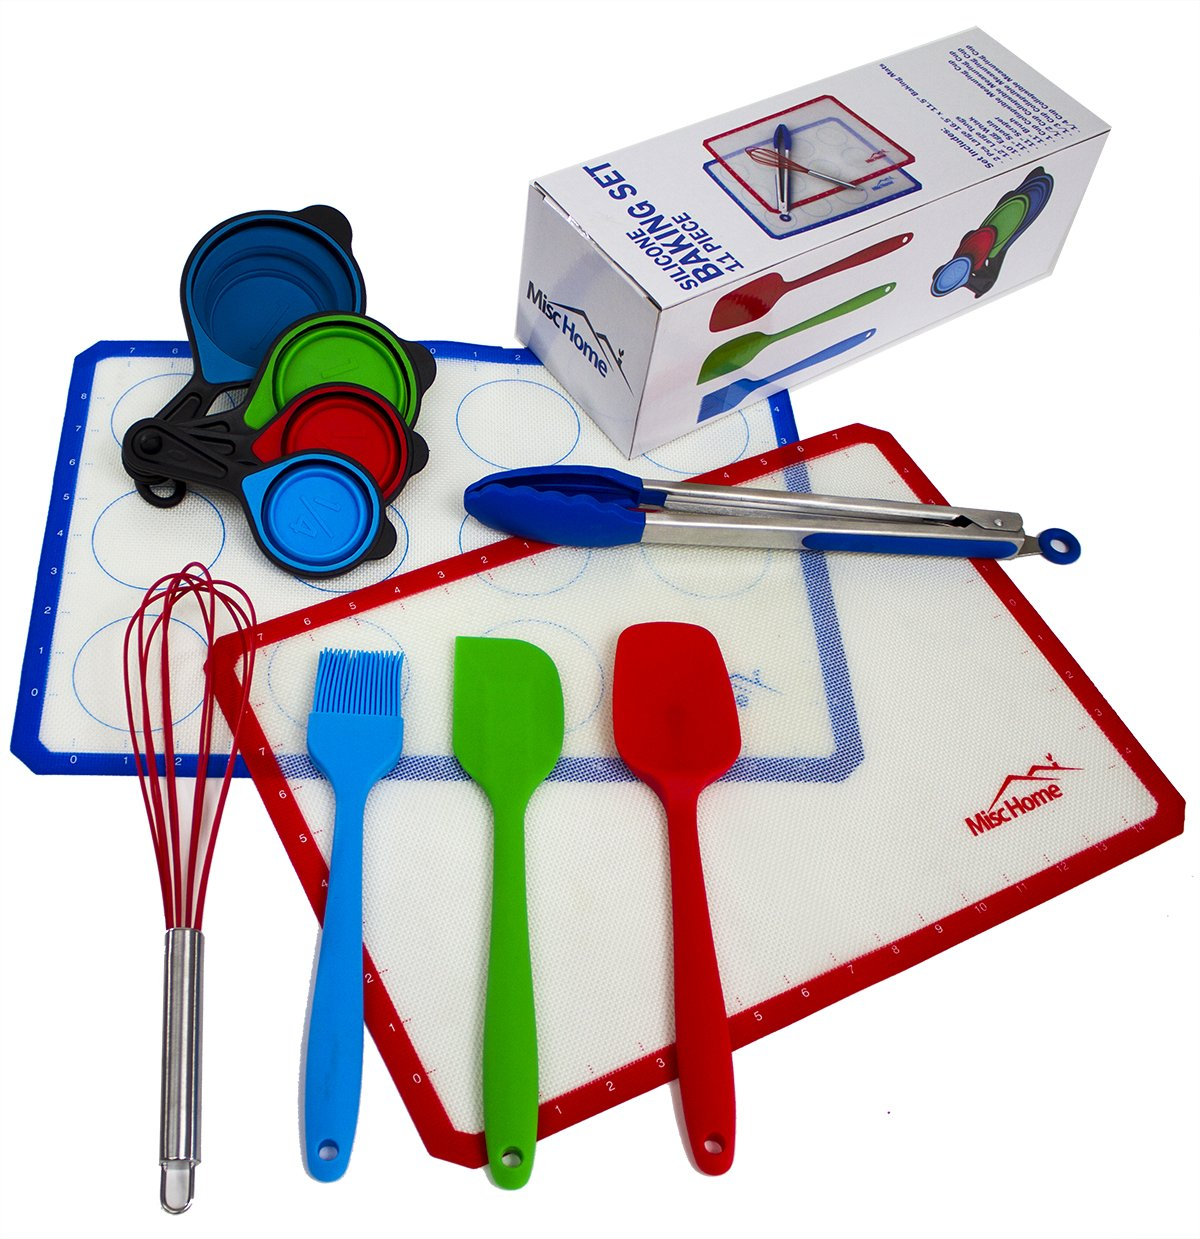 [Best Value] 11 Pcs Silicone Baking Set All BPA-Free 2 Silicone Baking Mats Silicone Spatula Set + Brush + Whisk + 4 Collapsible Silicone Measuring Cups + Stainless Steel Tongs w/ Silicone Tips